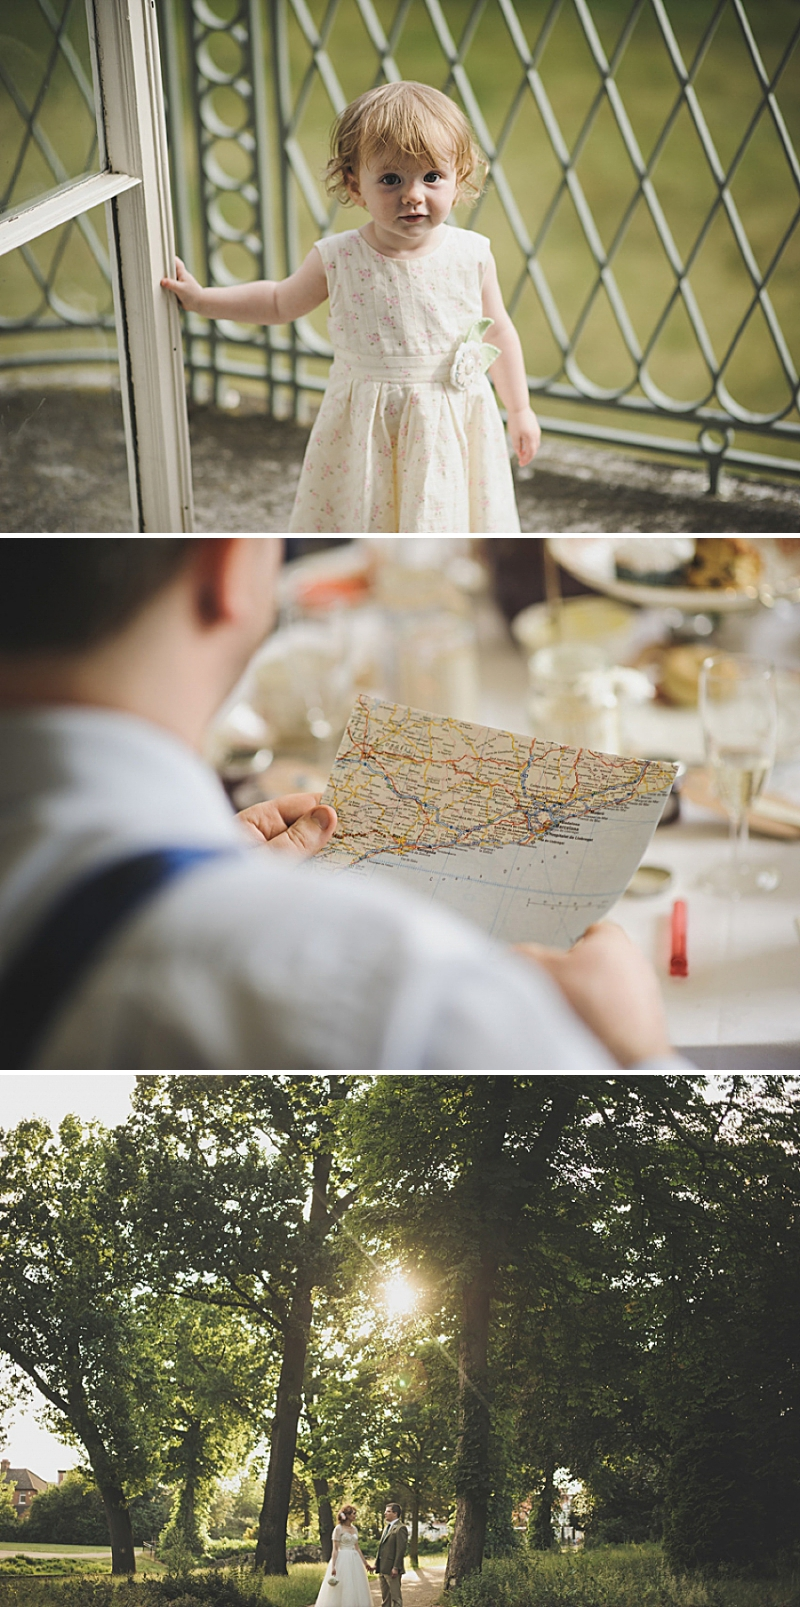 An English country garden tea party wedding with vintage touches at Valentines Mansion. Rachael Simpson shoes and photographs by Rik Pennington_0009